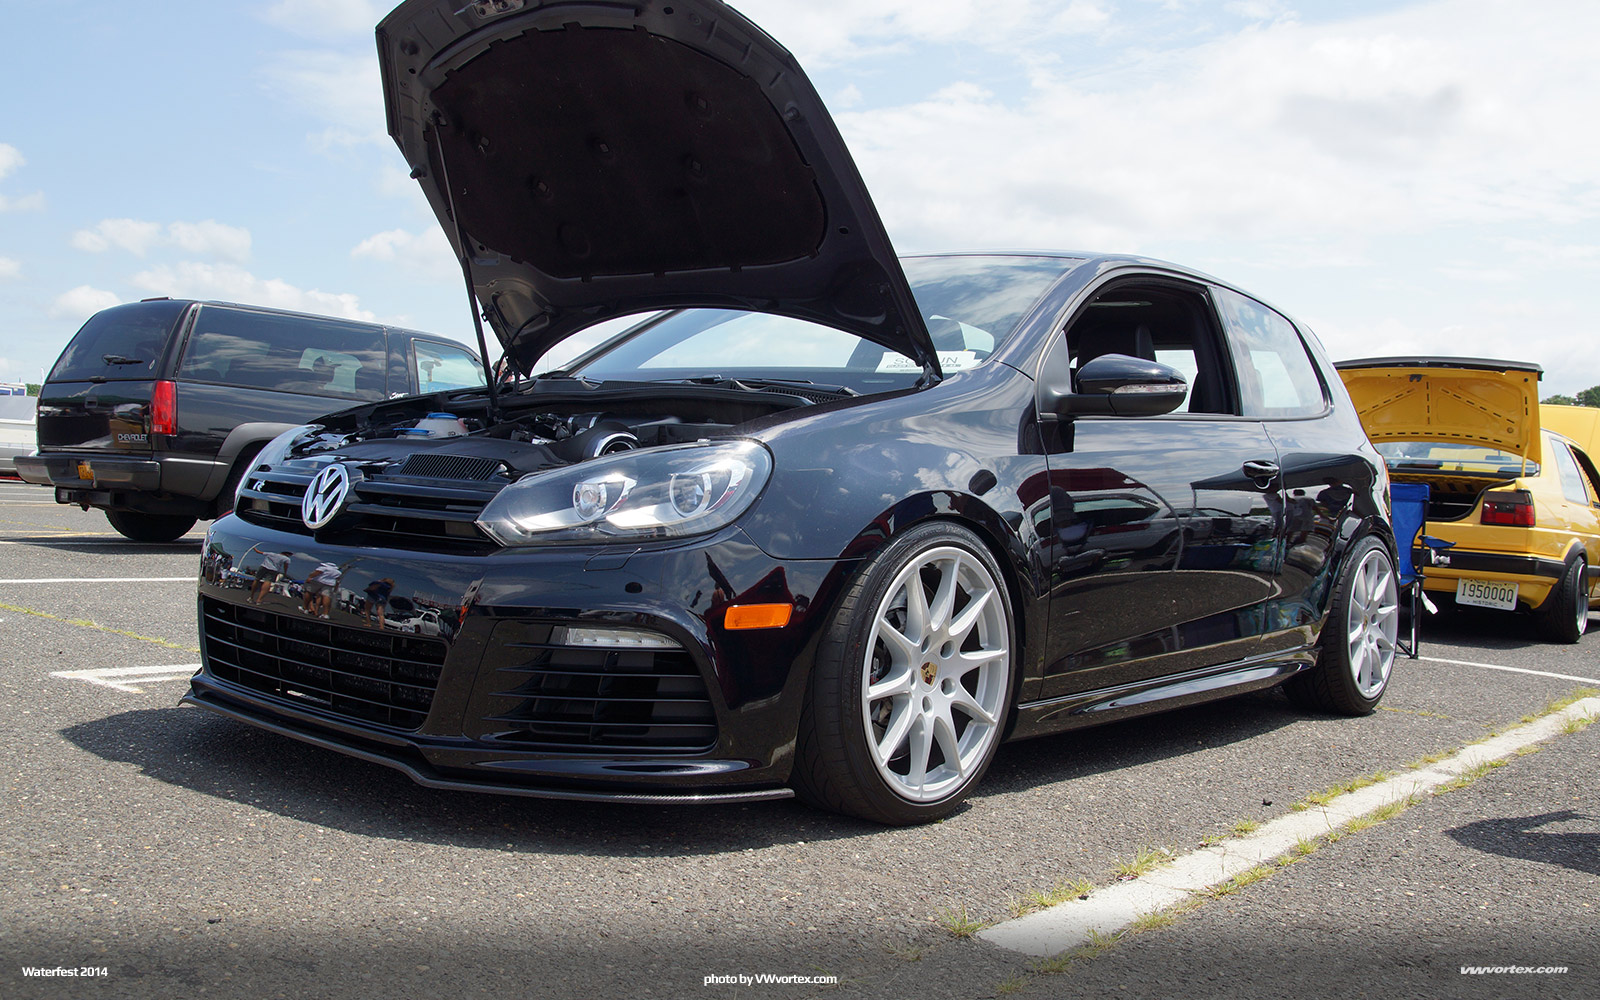 2014 waterfest vw audi 1627 600x375